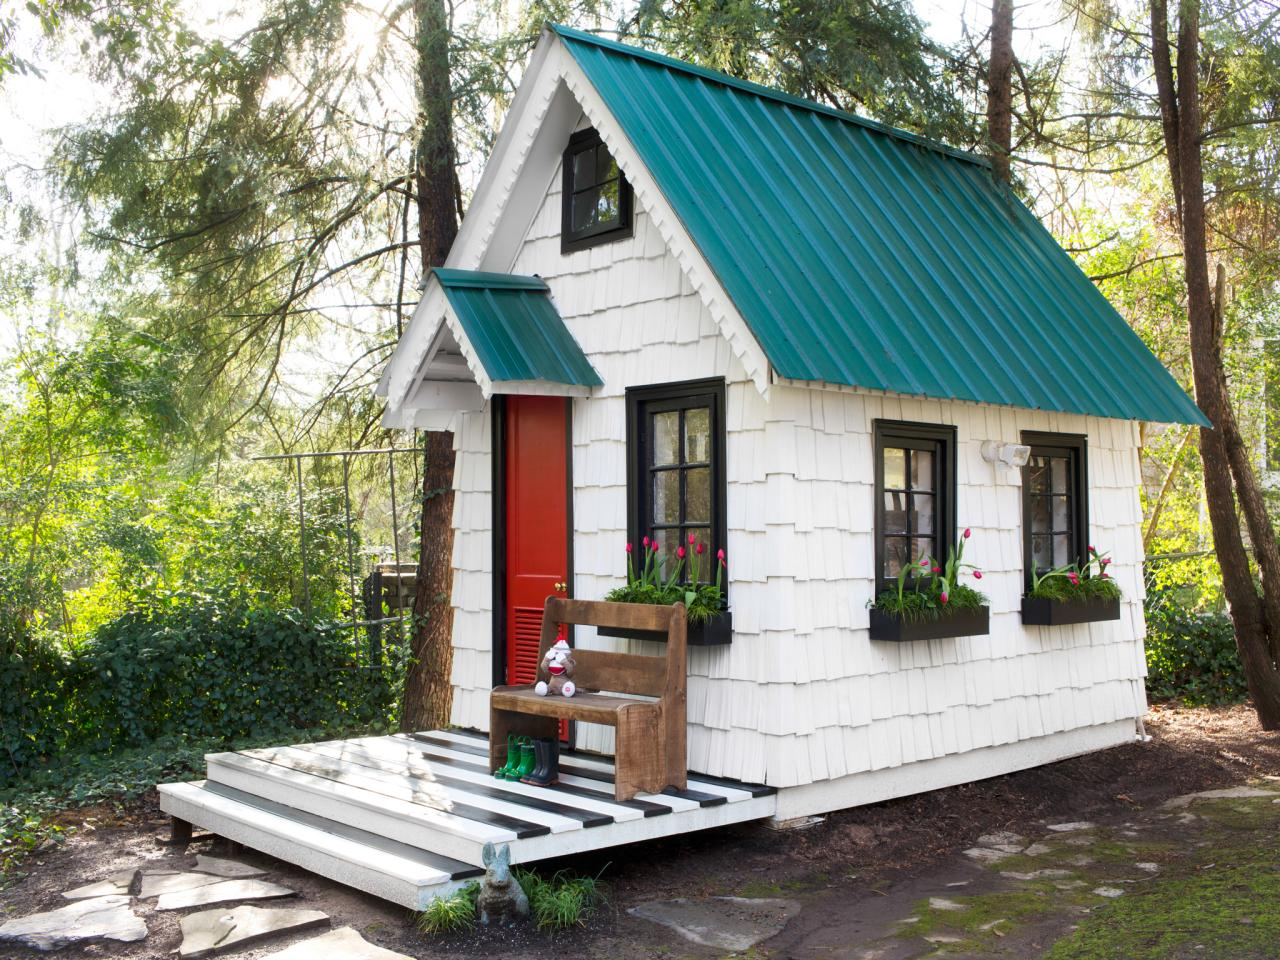 Low cost high impact ways to dress up a playhouse for Tiny house plans cost to build